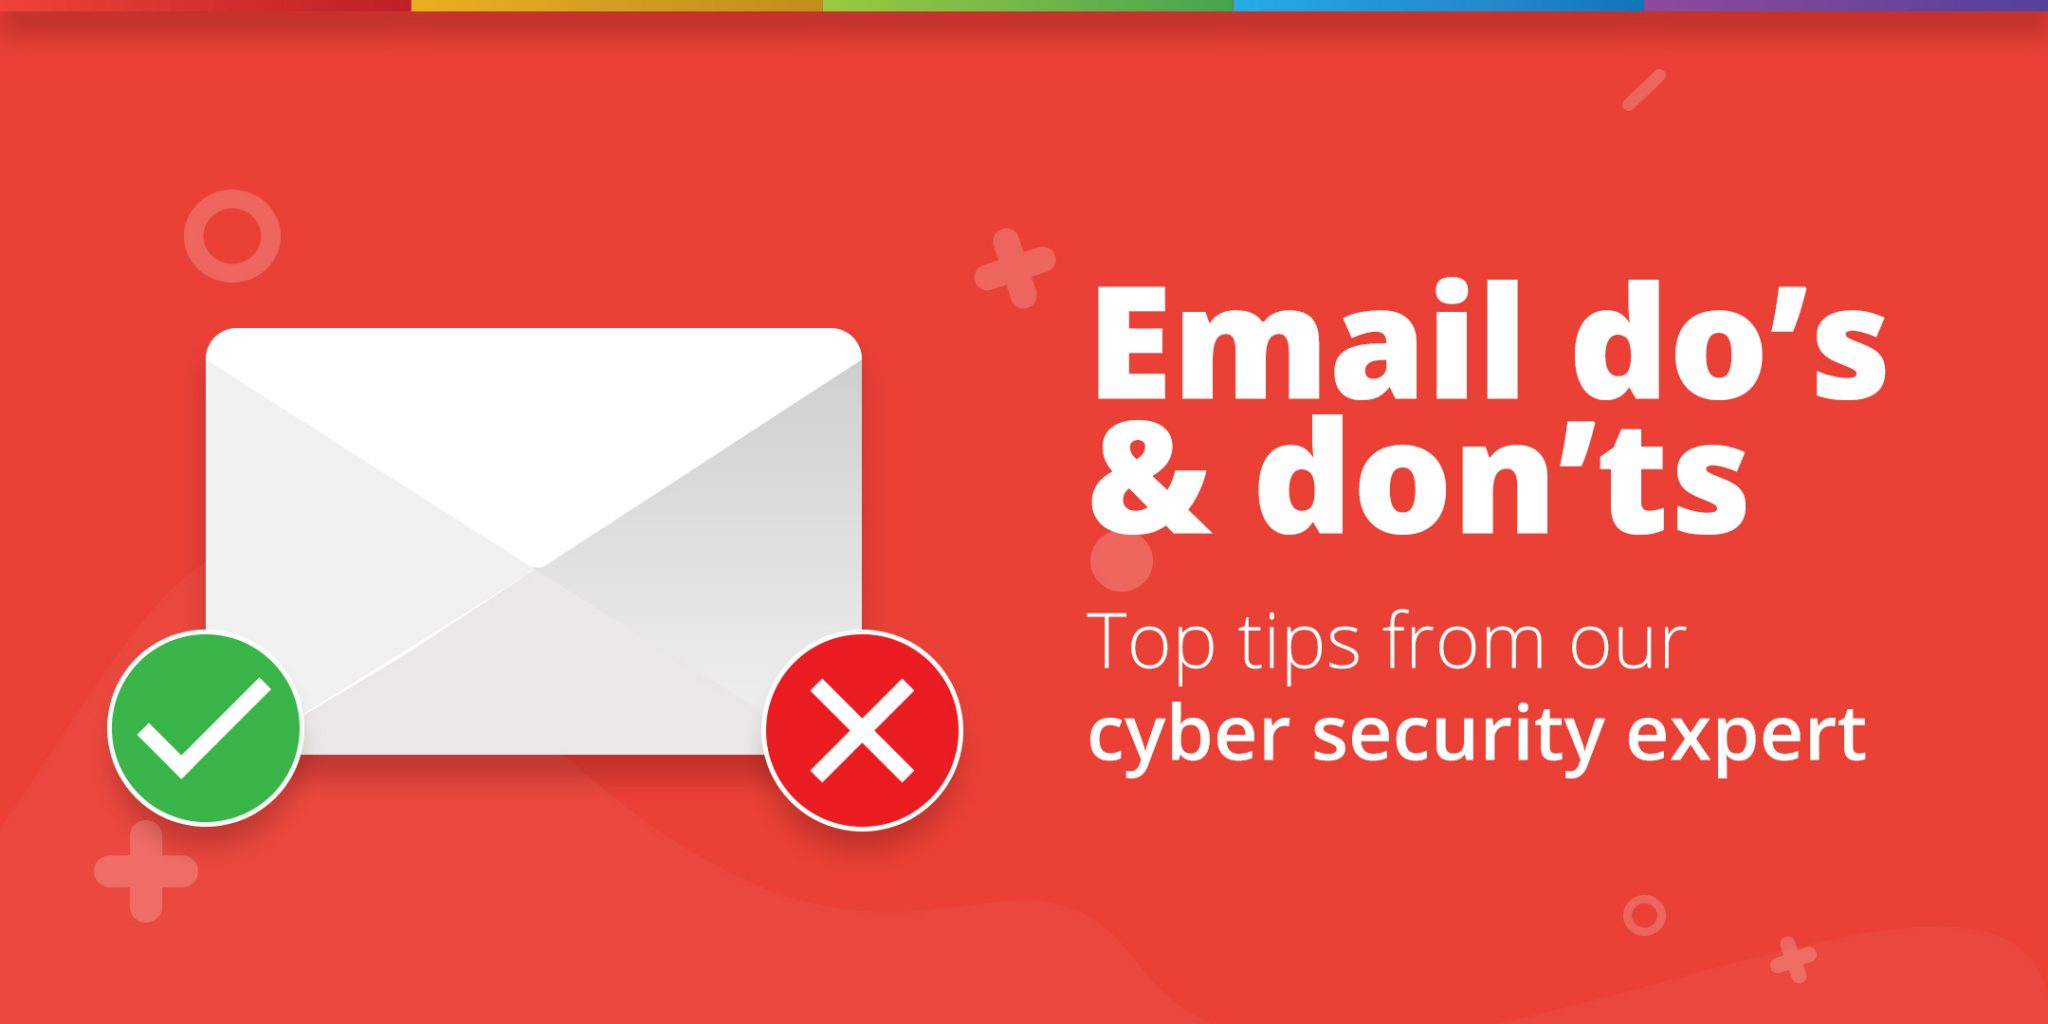 email-dos-donts